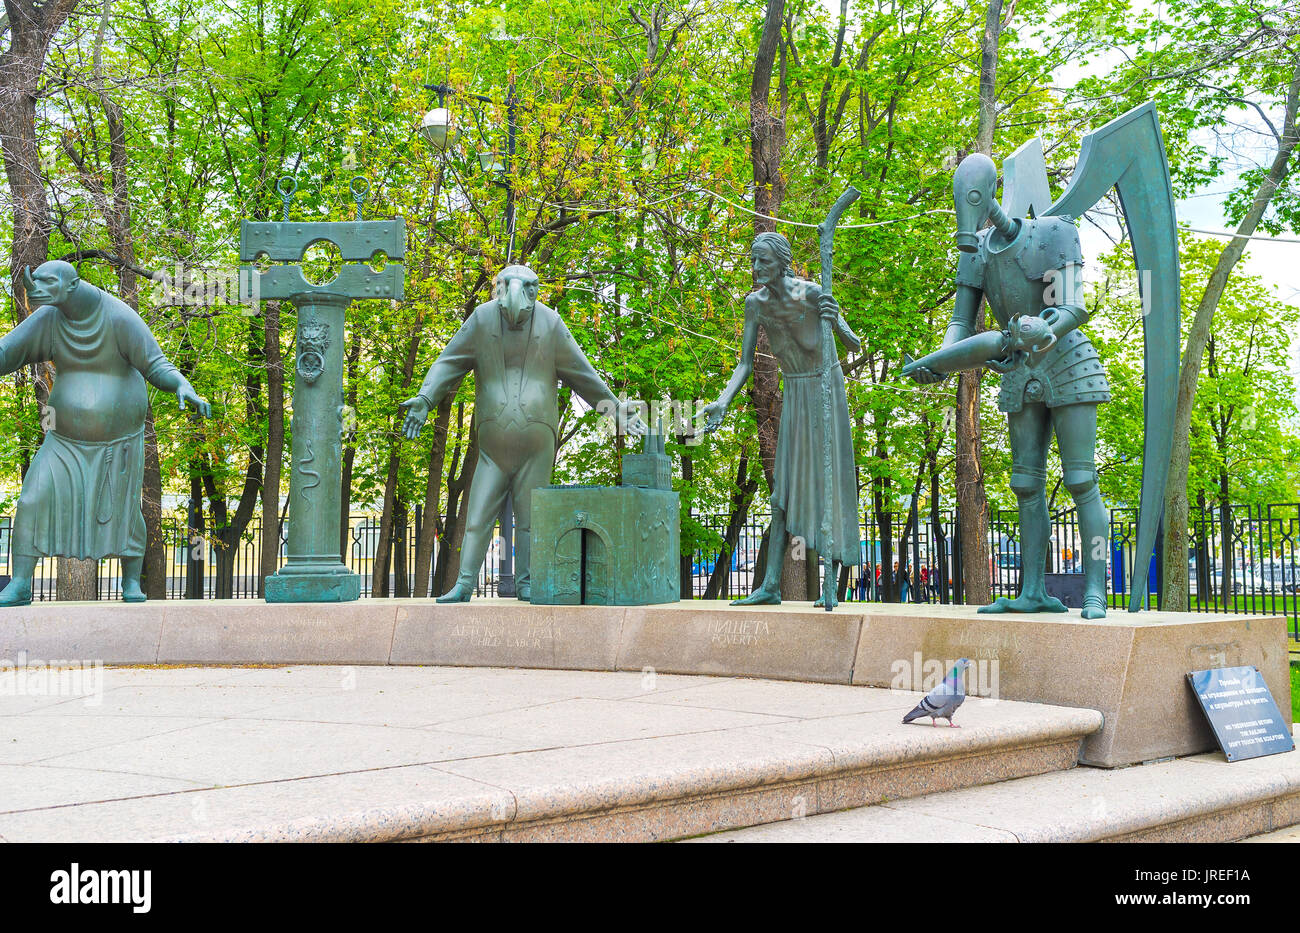 MOSCOW, RUSSIA - MAY 11, 2015: The fragment of sculpture Children Are the Victims of Adult Vices, in Park in Bolotny Island on May 11 in Moscow - Stock Image